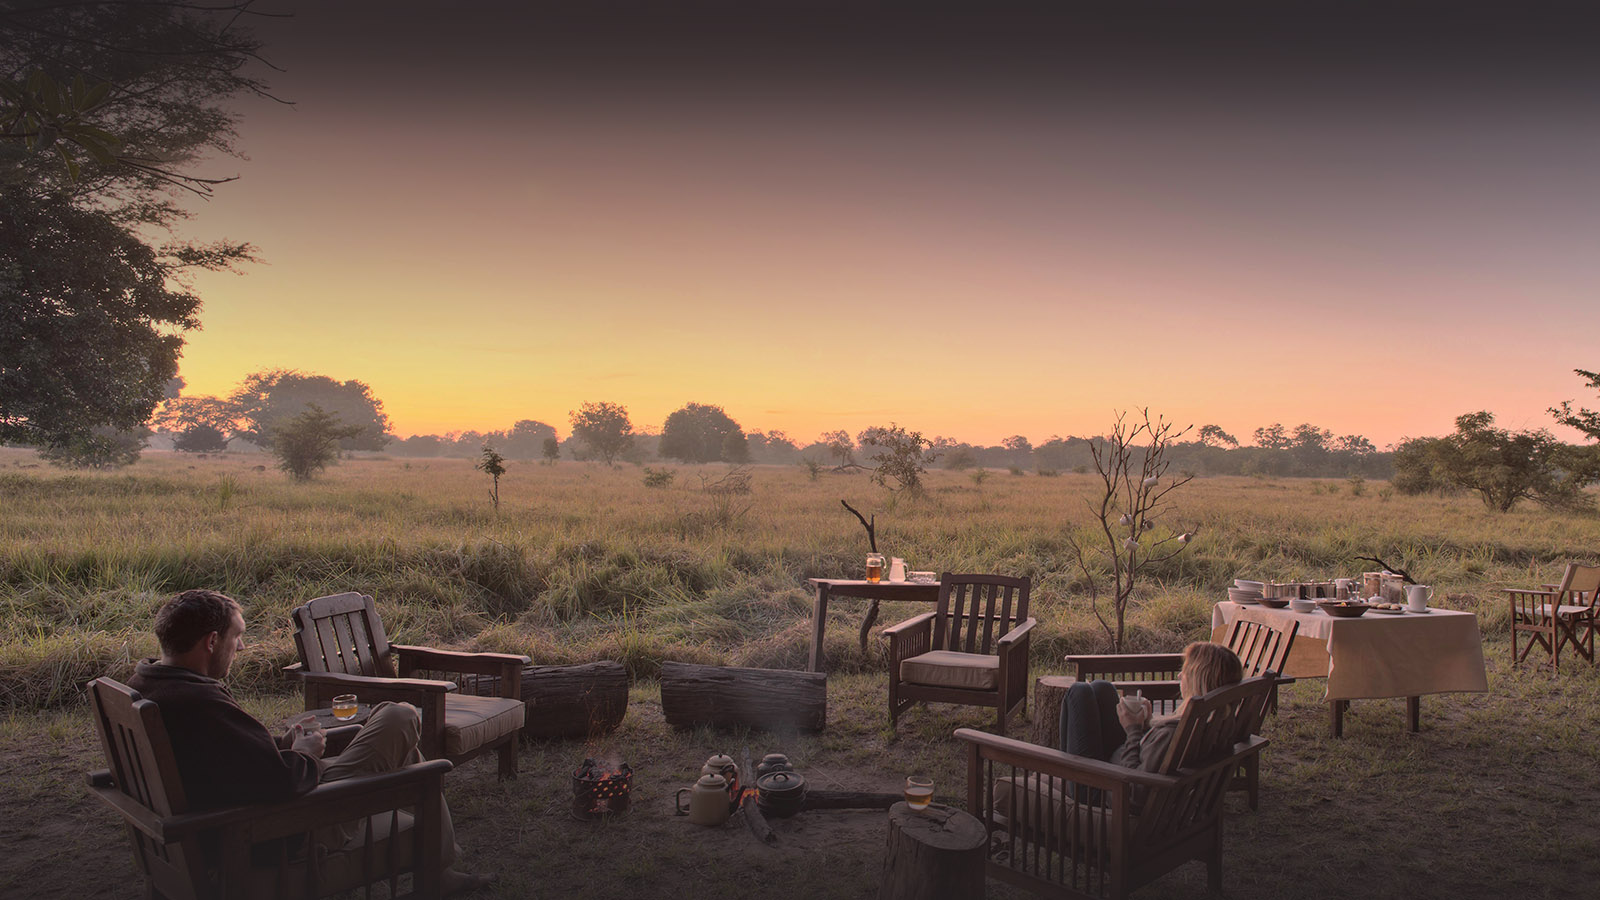 luwi-camp-lodge-zambia-in-style-tours-safari-packages-lodges-exploring-south-luangwa-national-park-relaxing-rustic